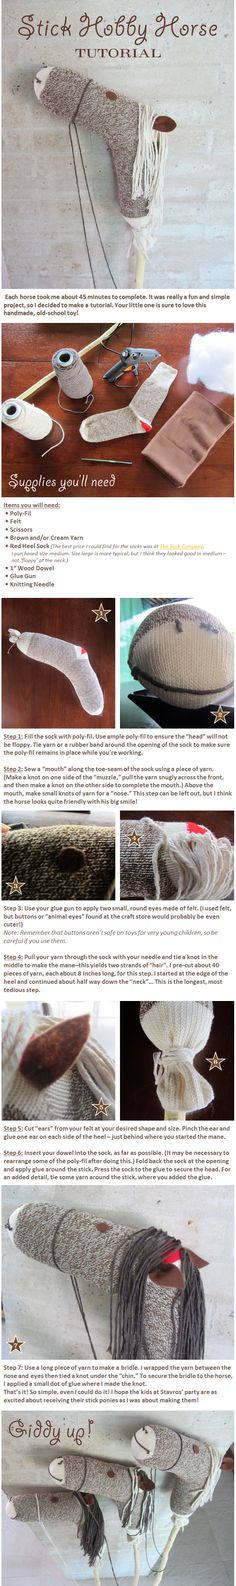 Hobby stick horse activity tutorial. Toy Story or western birthday party theme for a cowboy or cowgirl.